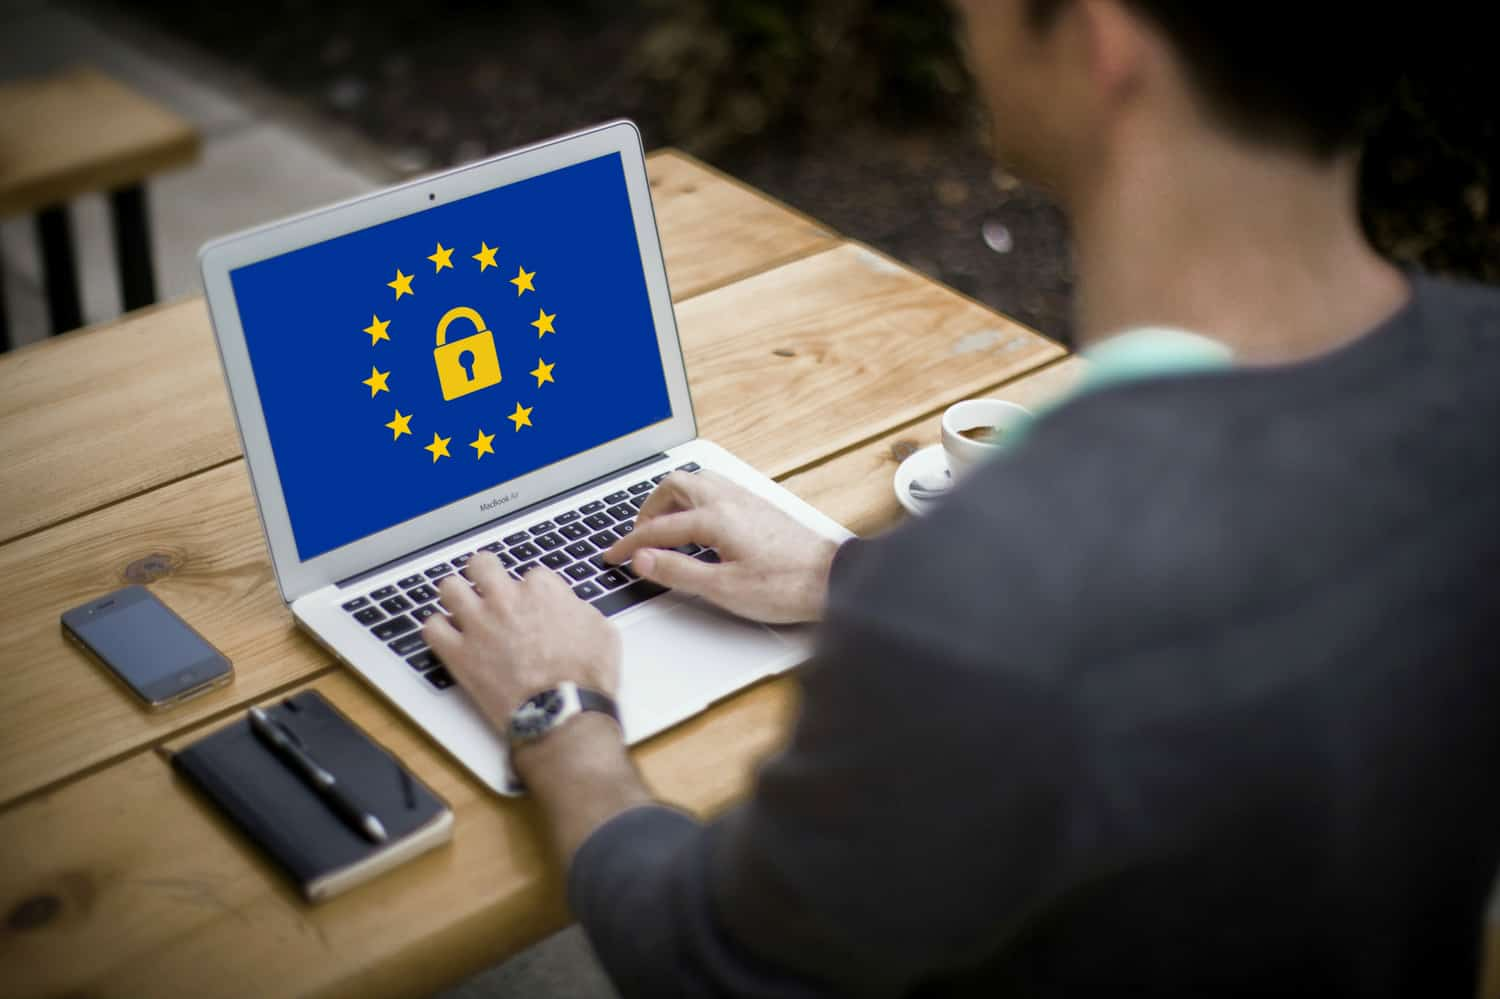 GDPR keeping website data safe